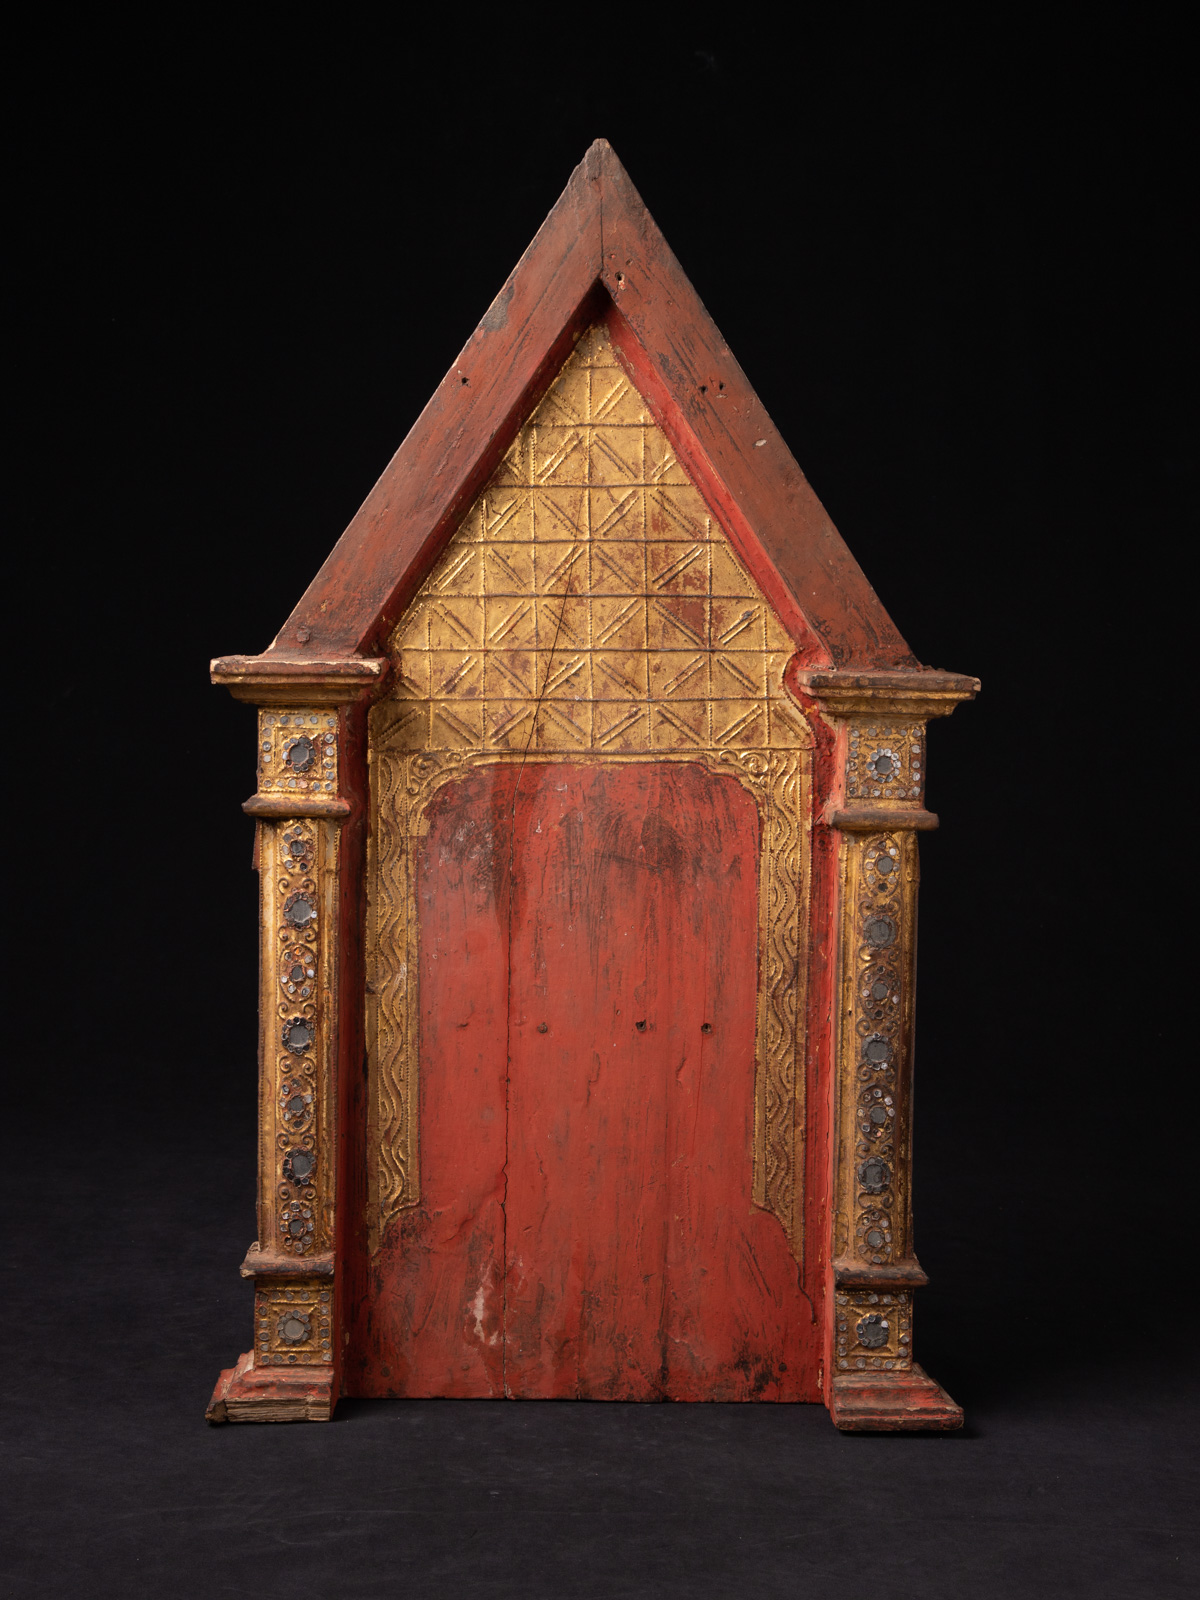 Antique wooden temple panel from Burma made from Wood